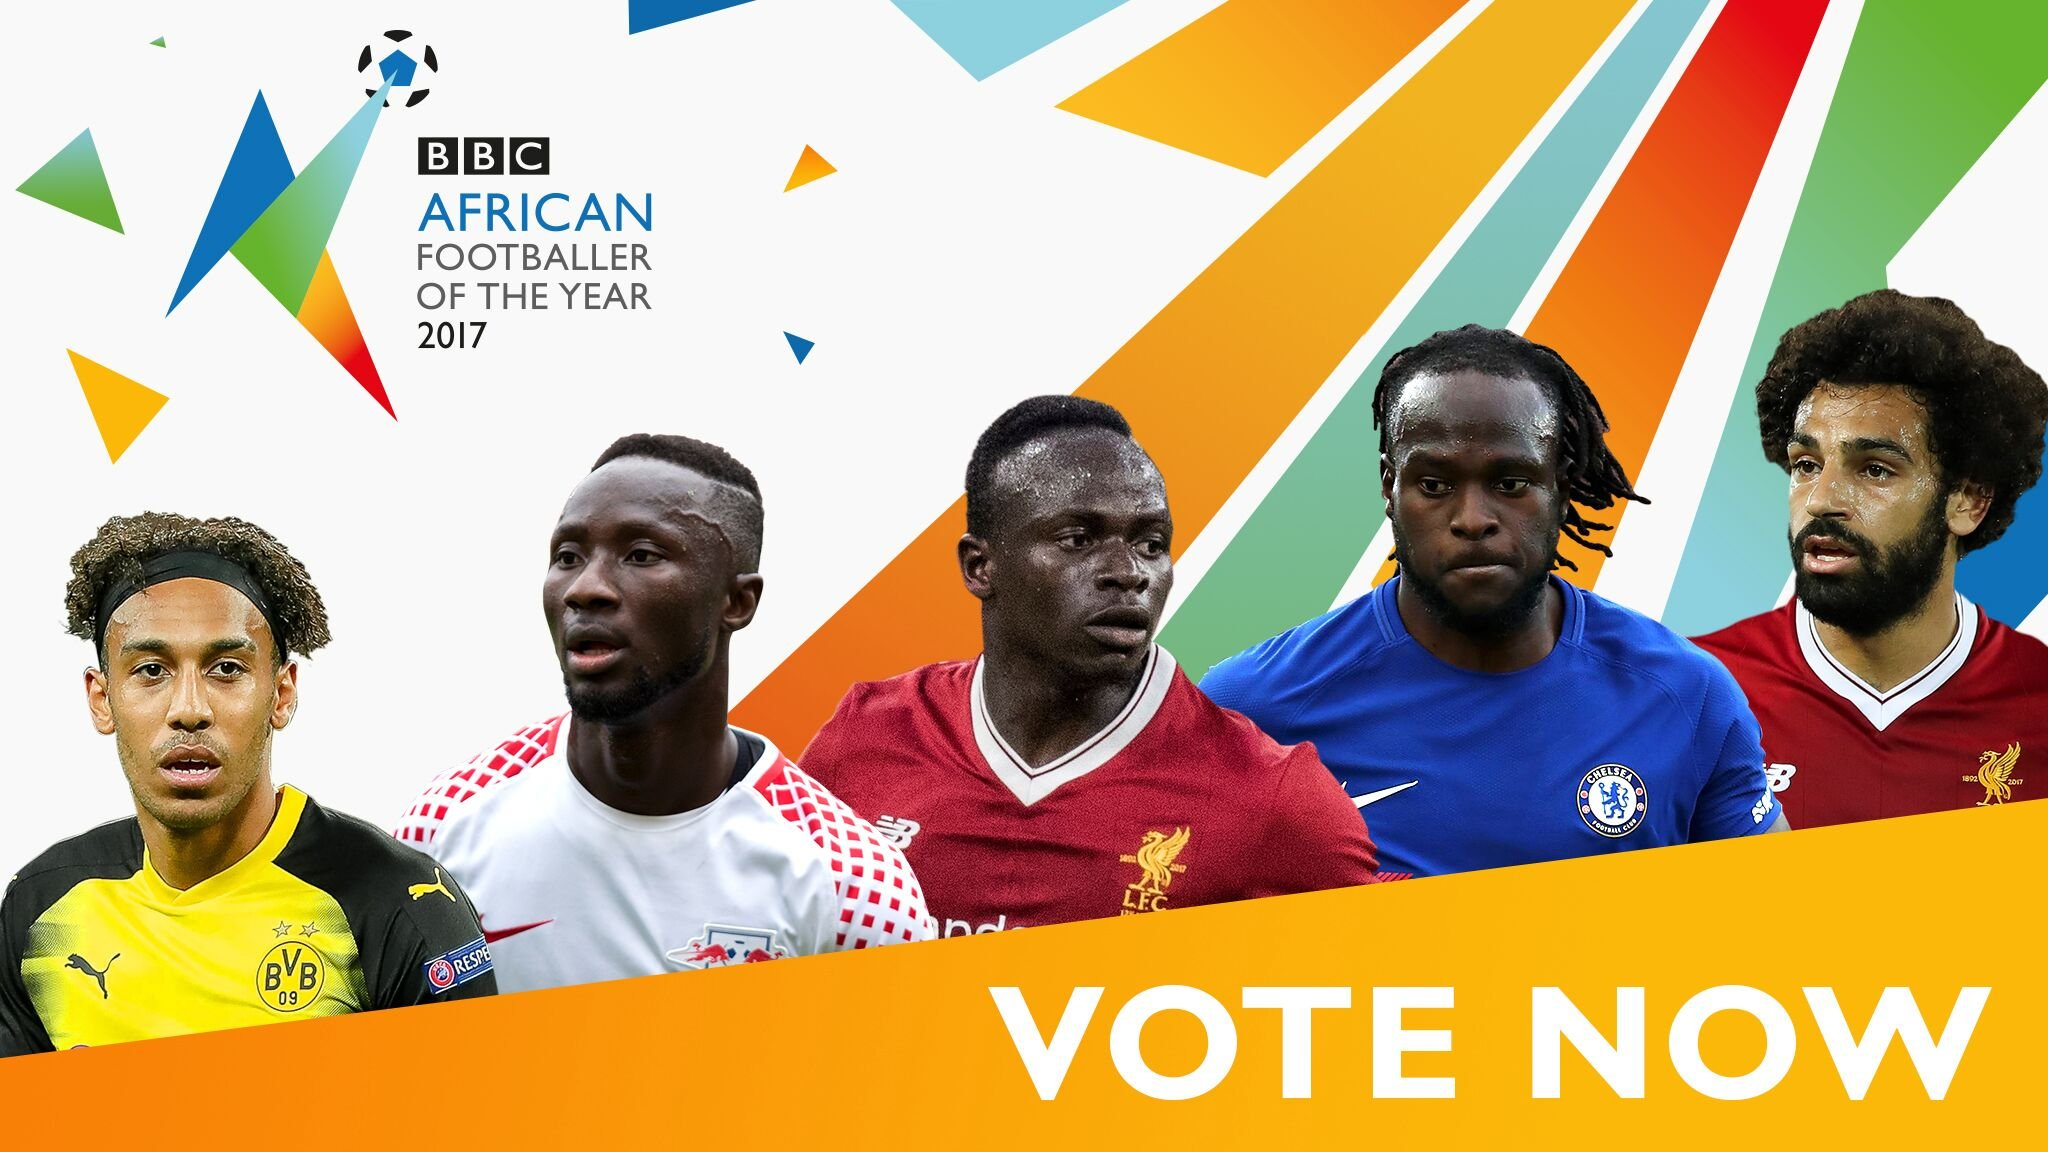 African Footballer of the Year vote open - who should win?